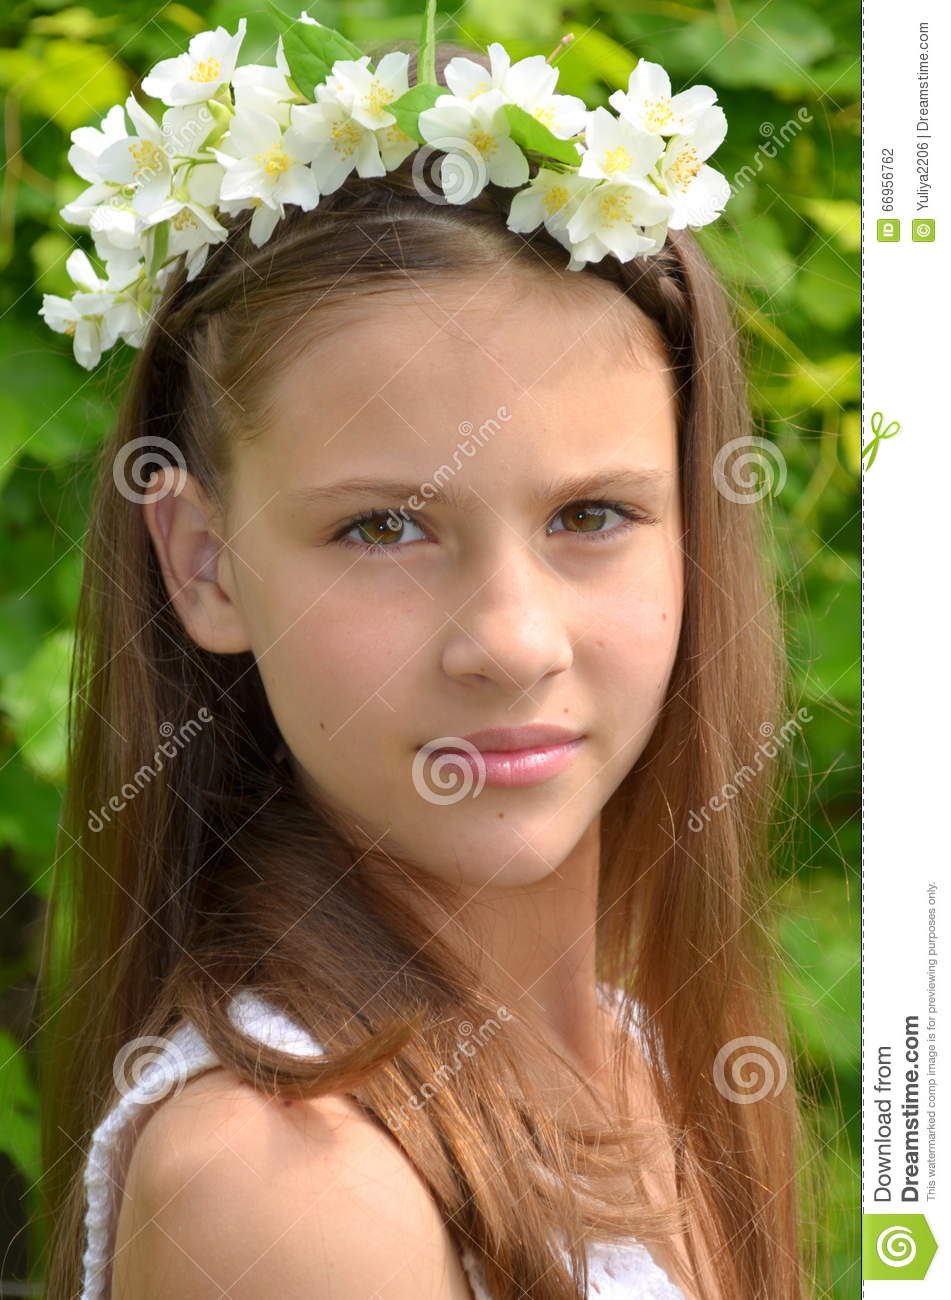 Girl with jasmine flowers stock photo image of femininity 66956762 girl with a flower wreath on head with live jasmine flowers izmirmasajfo